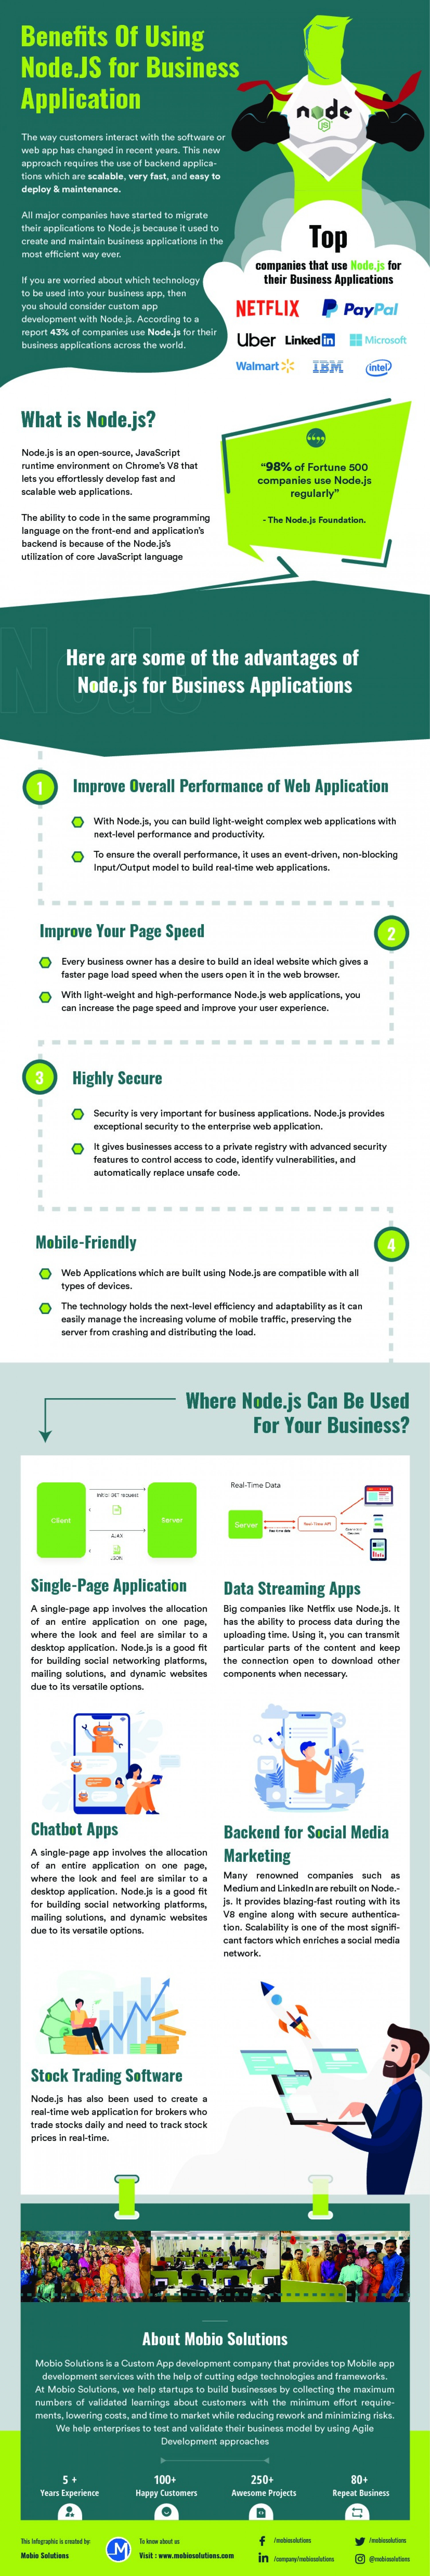 Benefits Of Using Node.JS for Business Application Infographic